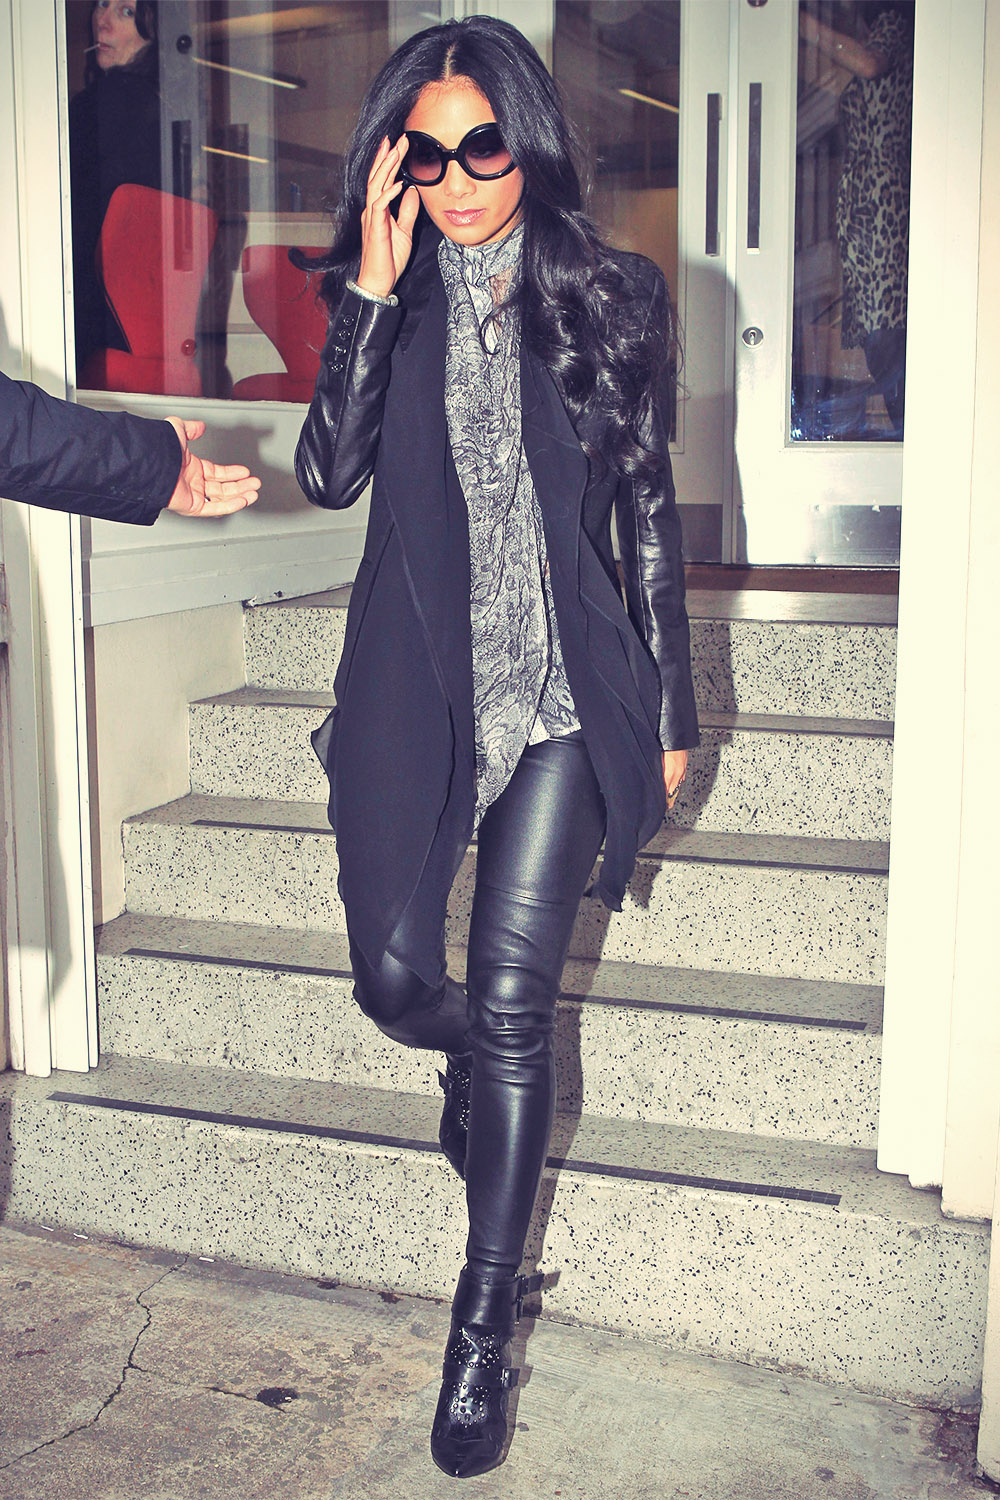 Nicole Scherzinger leaving an office